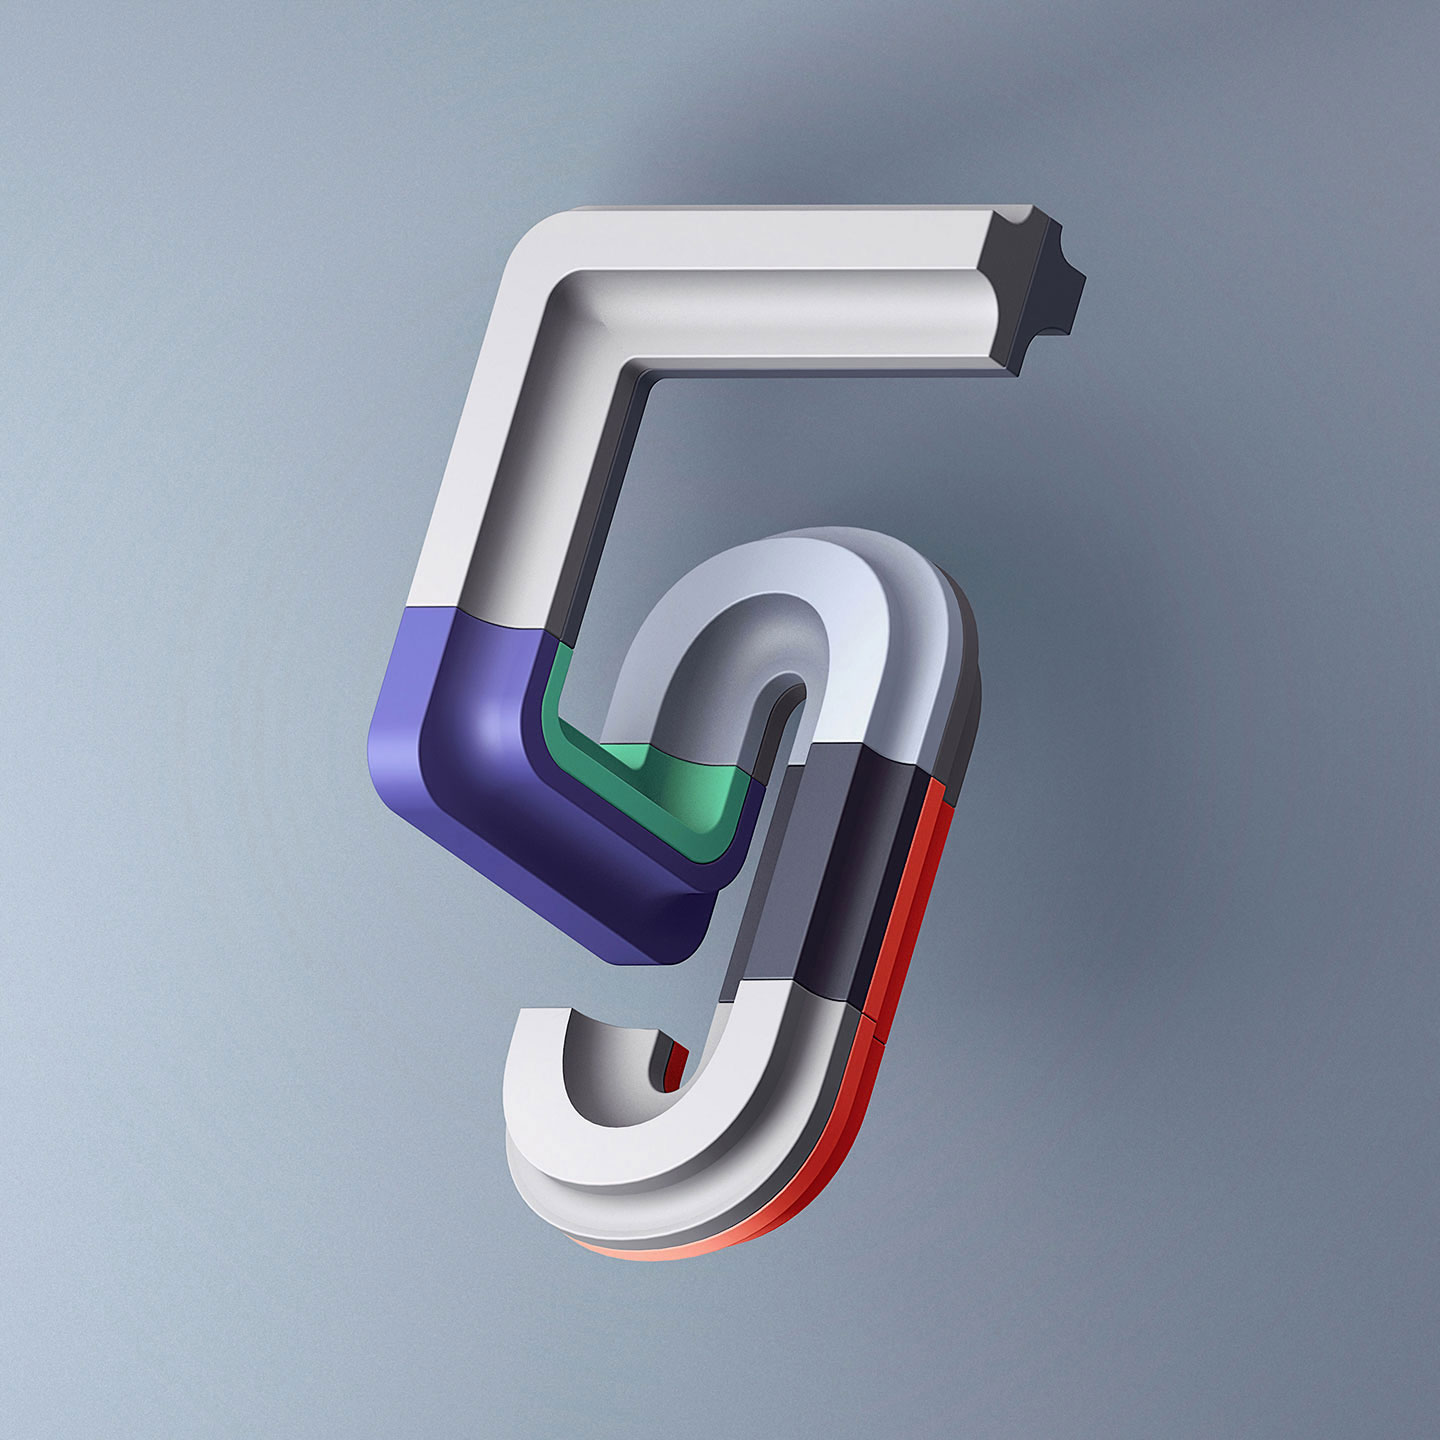 36 Days of Type 2016 - 3D typography number 5 visual.